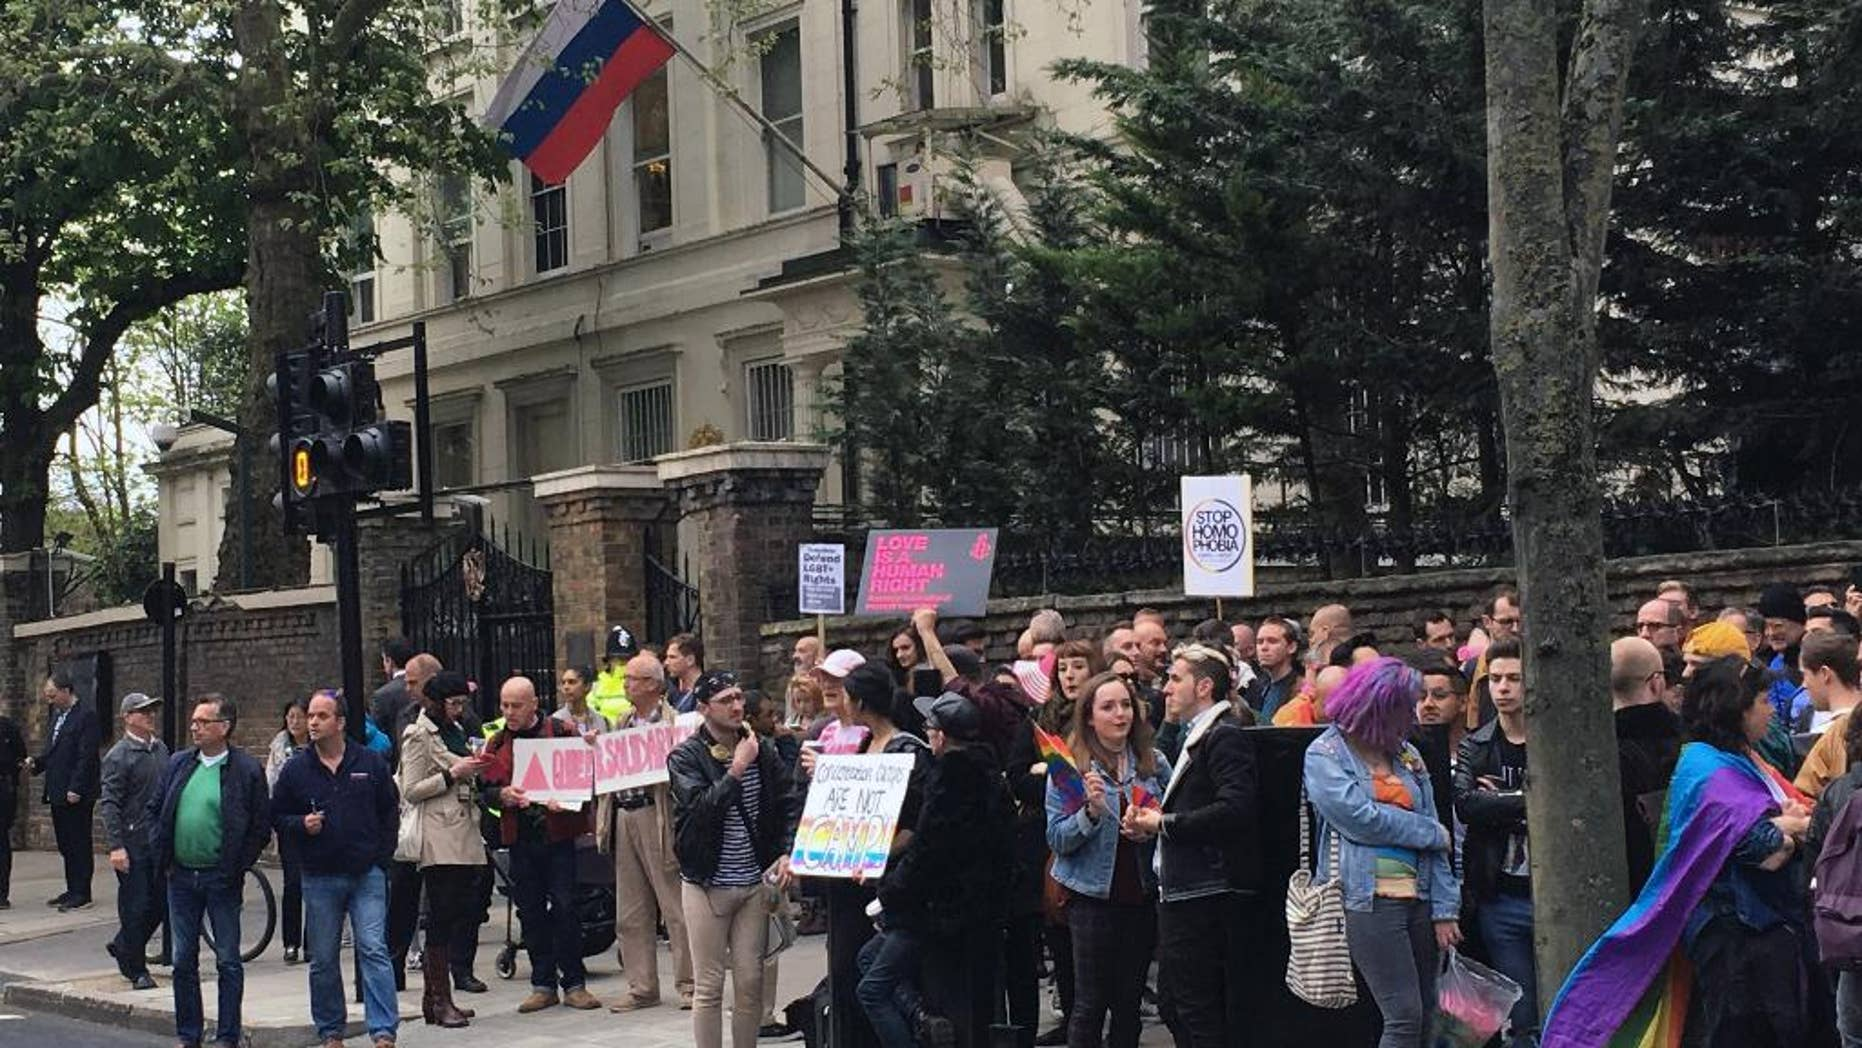 """People protest outside the Russian Embassy in London, following reports of the torture and murder of gay men in Chechnya, Wednesday April 12, 2017. The United Nations' High Commissioner for Human Rights called upon the Russian government in a statement """"to put an end to the persecution of people perceived to be gay or bisexual, while Chechen authorities denied the reports, and spokesman for leader Ramzan Kadyrov insisted there were no gay people in Chechnya. (Thomas Hornall/PA via AP)"""